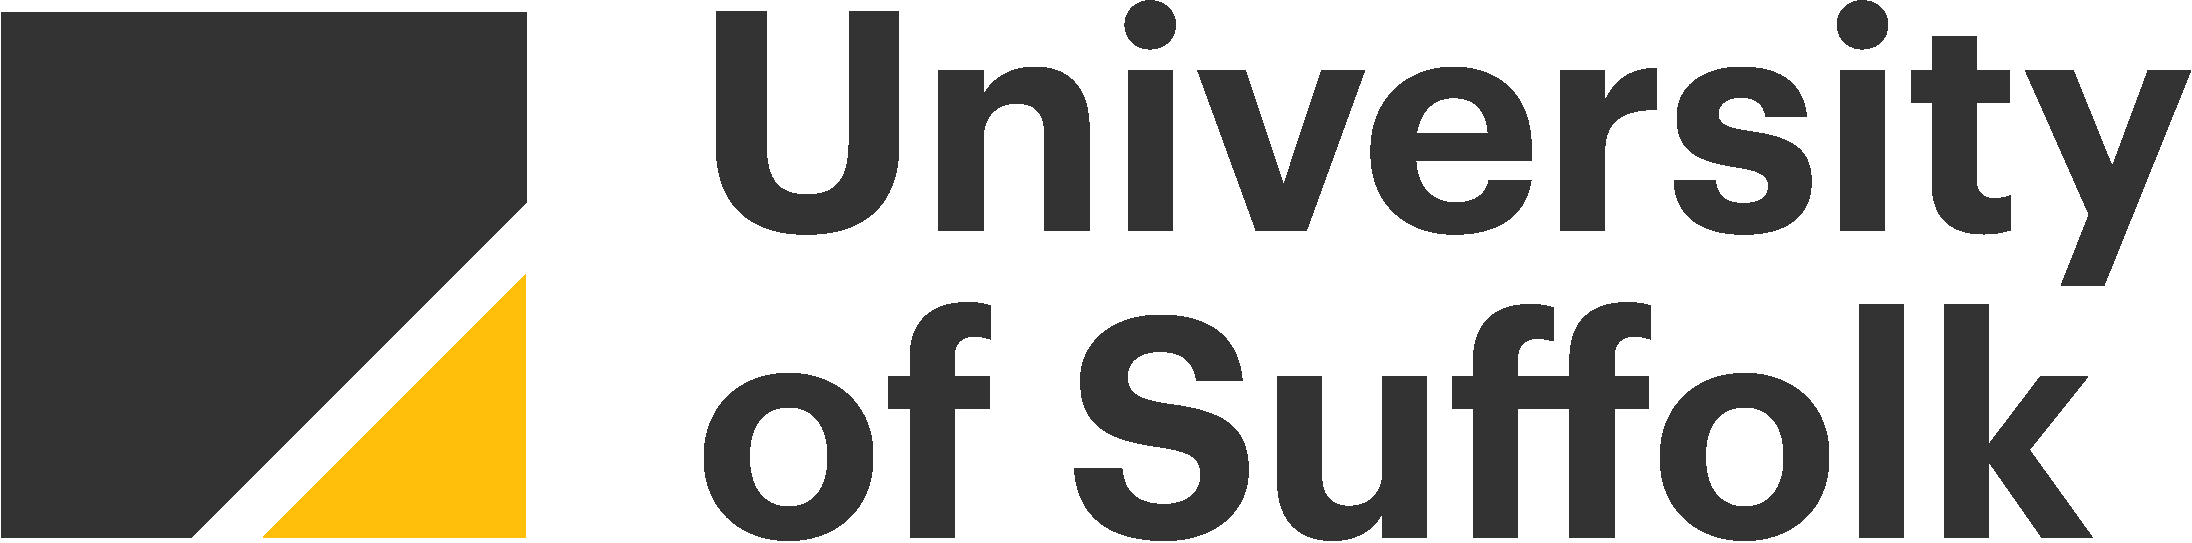 University-of-Suffolk_Logo_HR_RGB.png